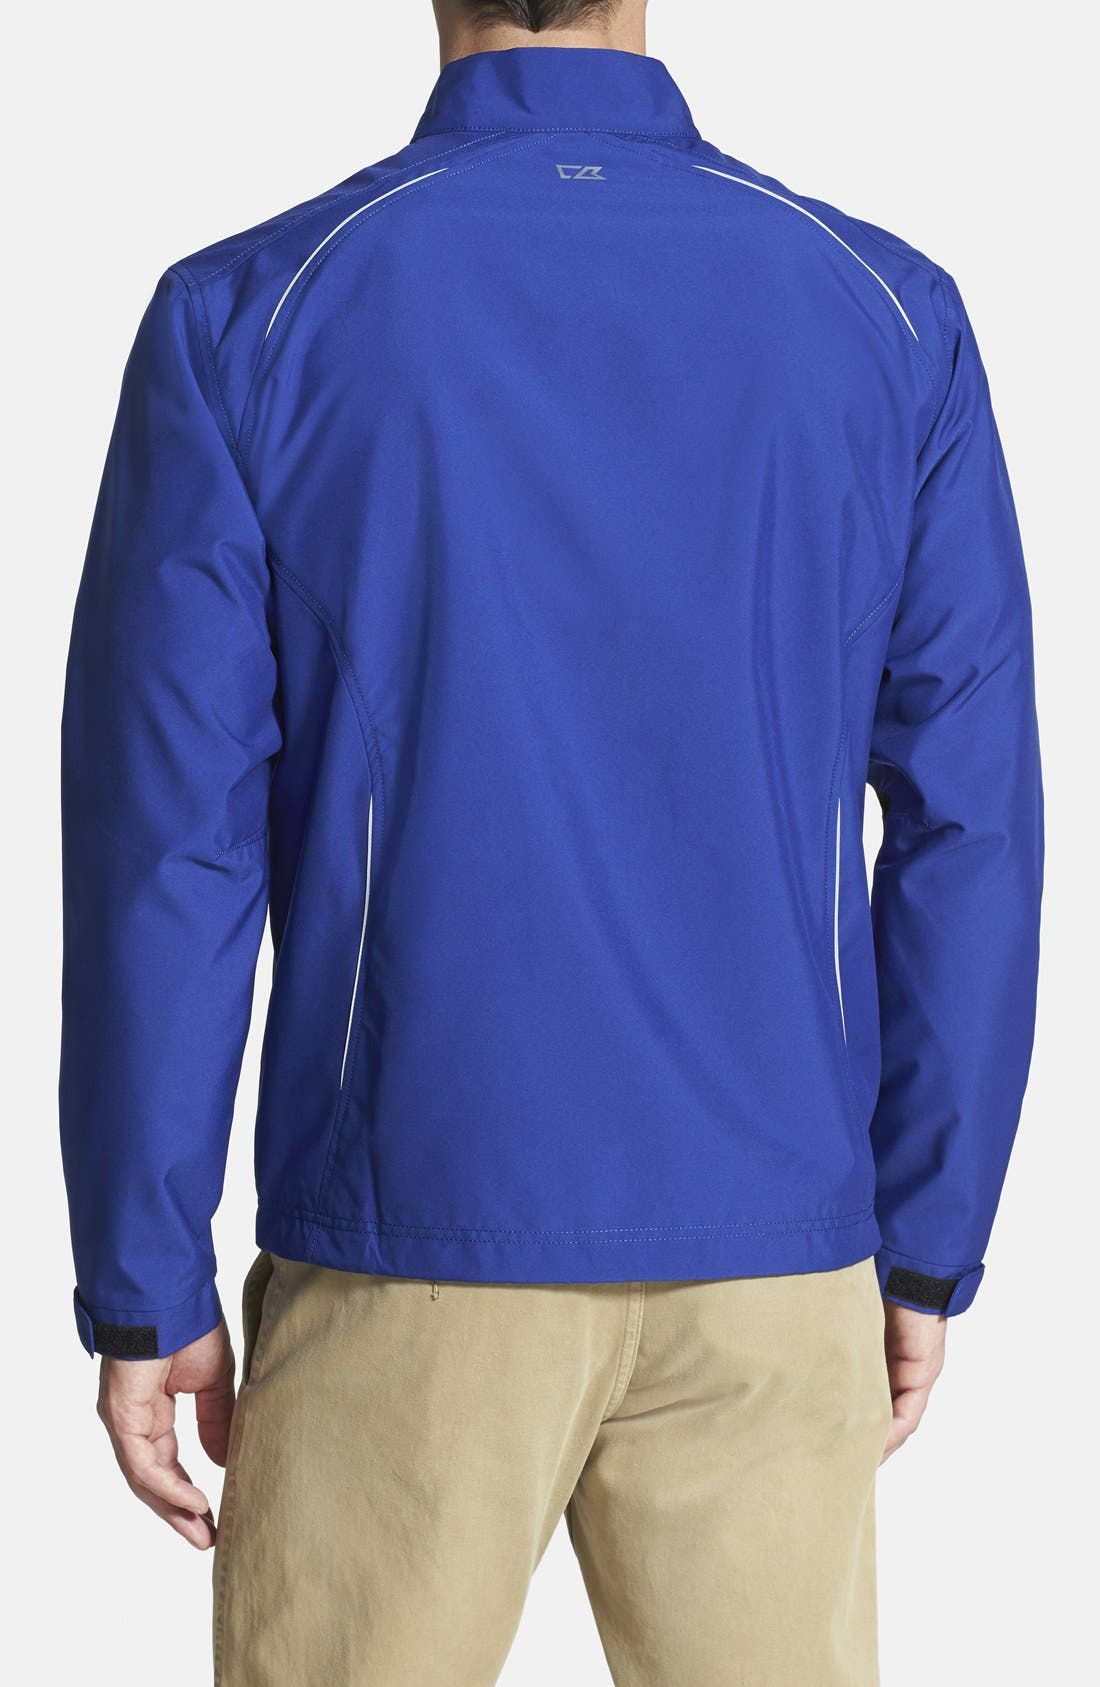 New York Giants - Beacon WeatherTec Wind & Water Resistant Jacket,                             Alternate thumbnail 2, color,                             462